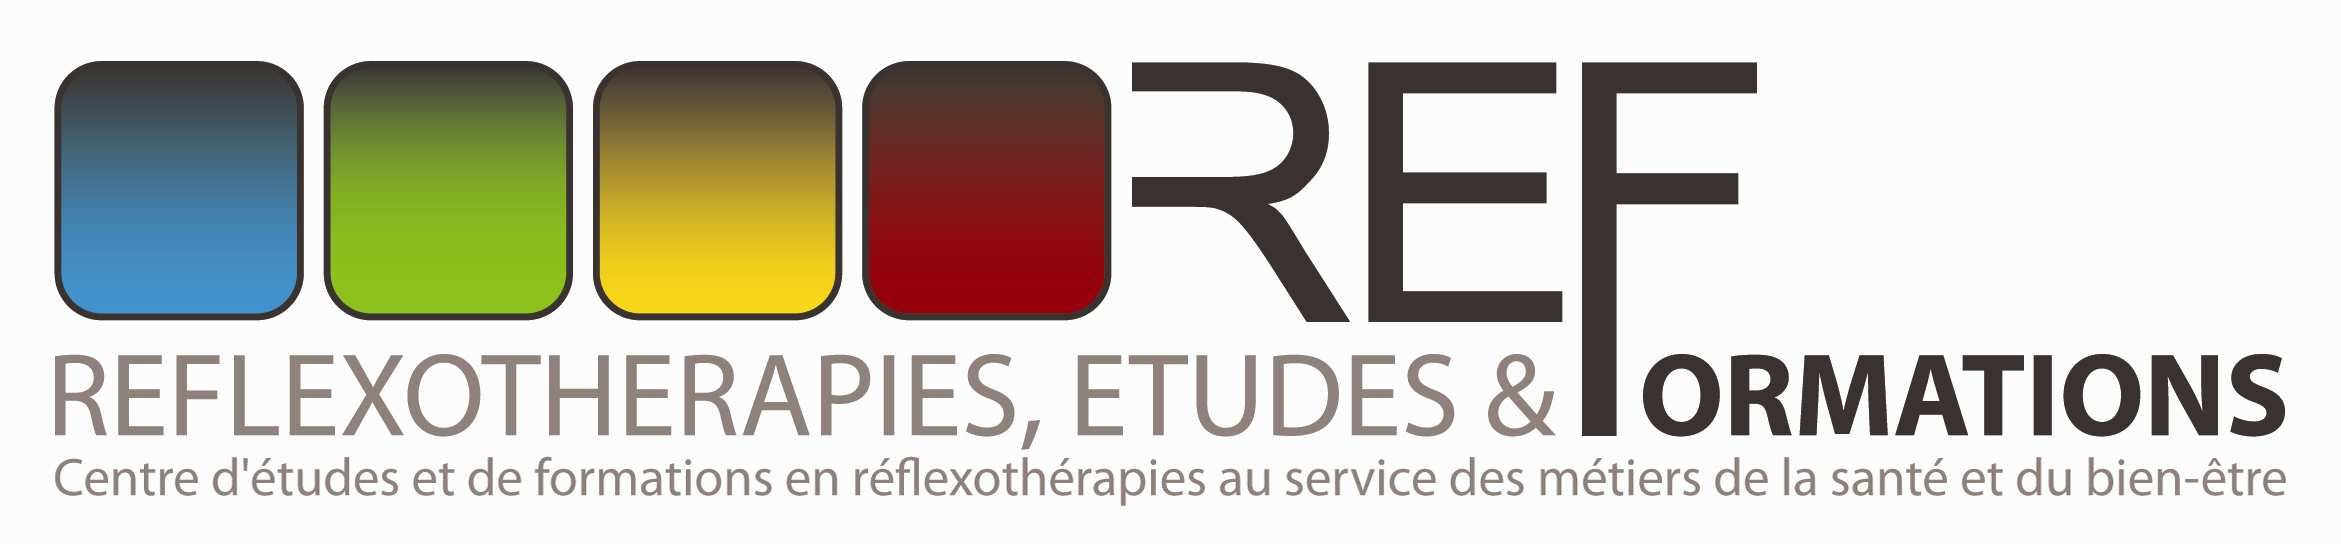 Therapy (Ecole Lynne Booth) Formateur agréé IIR